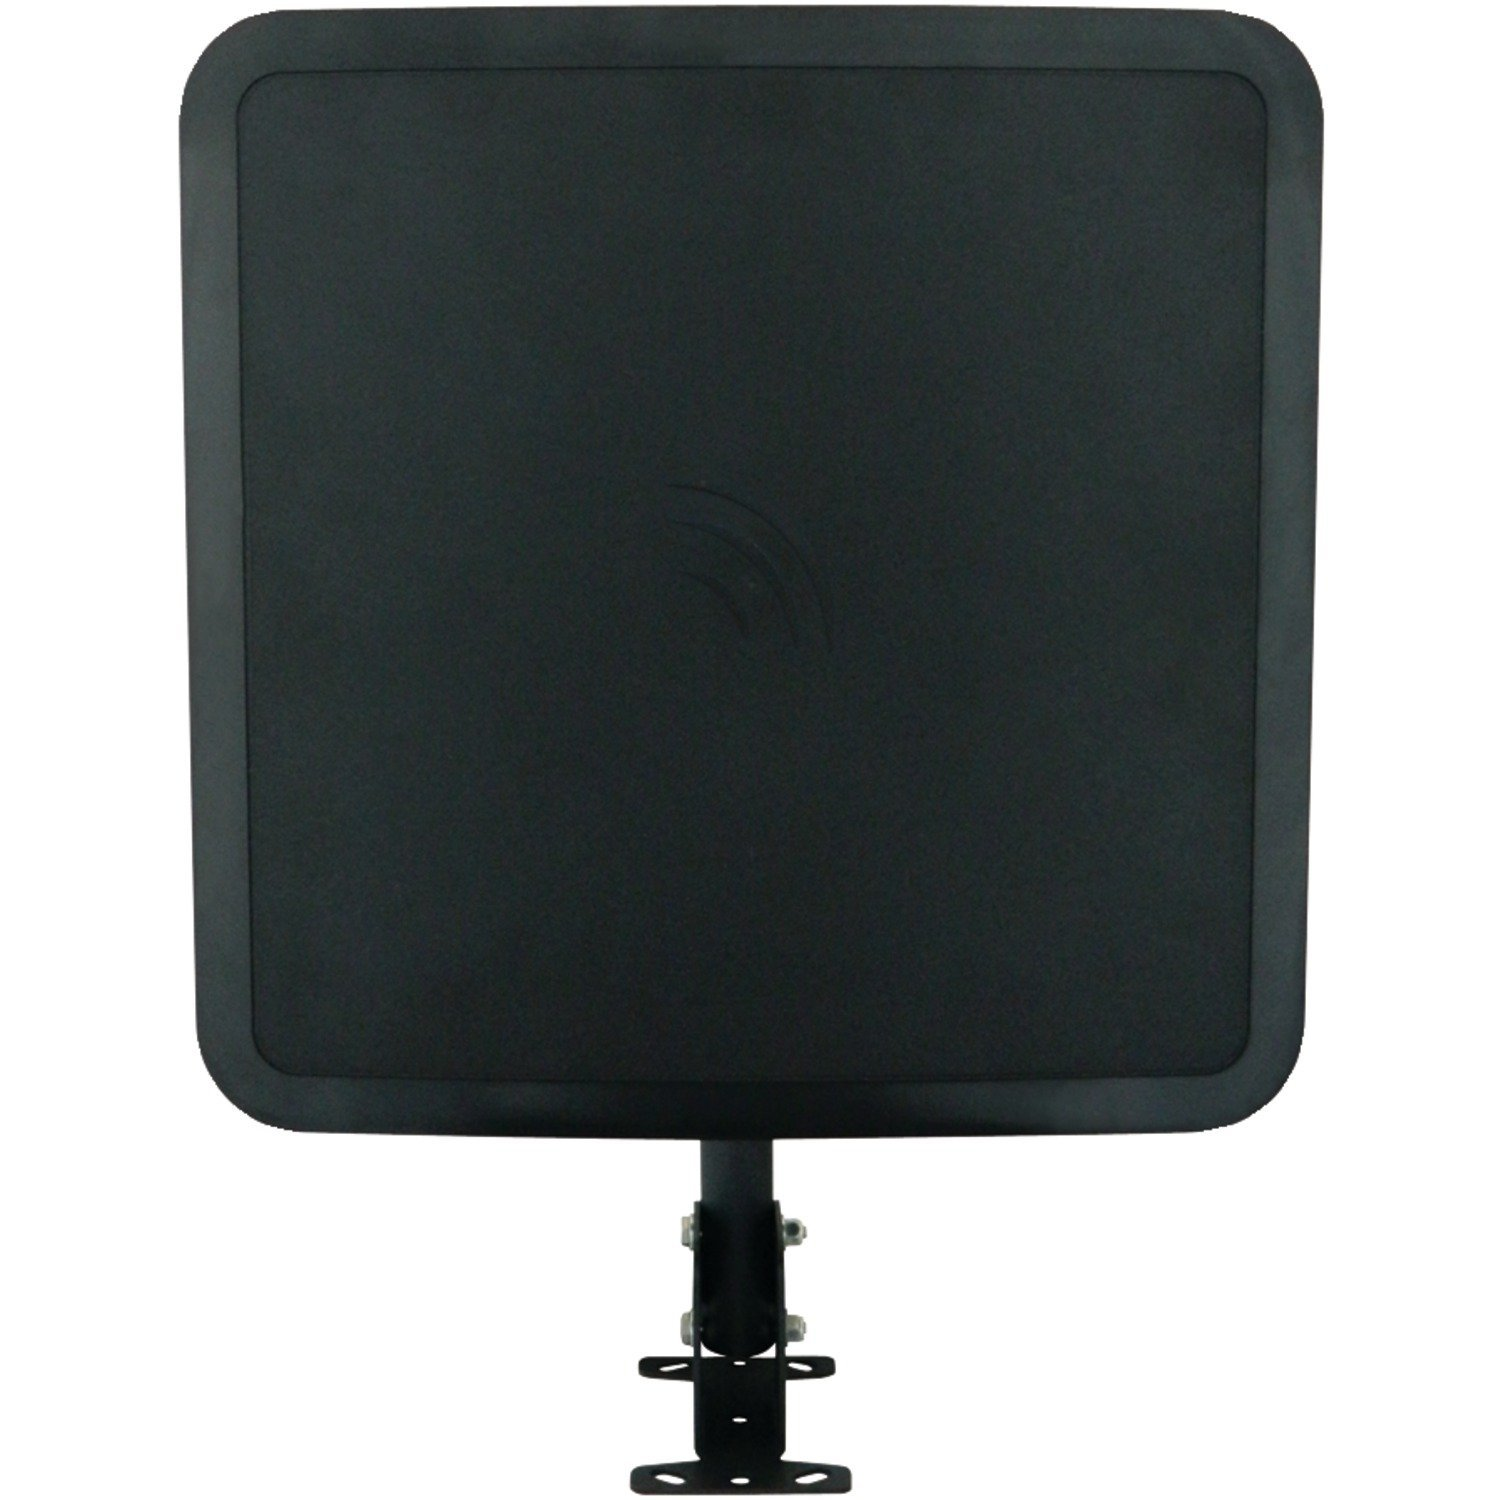 Top 5 Best Outdoor TV Antenna Consumer Reports - Buyer's Guide 4